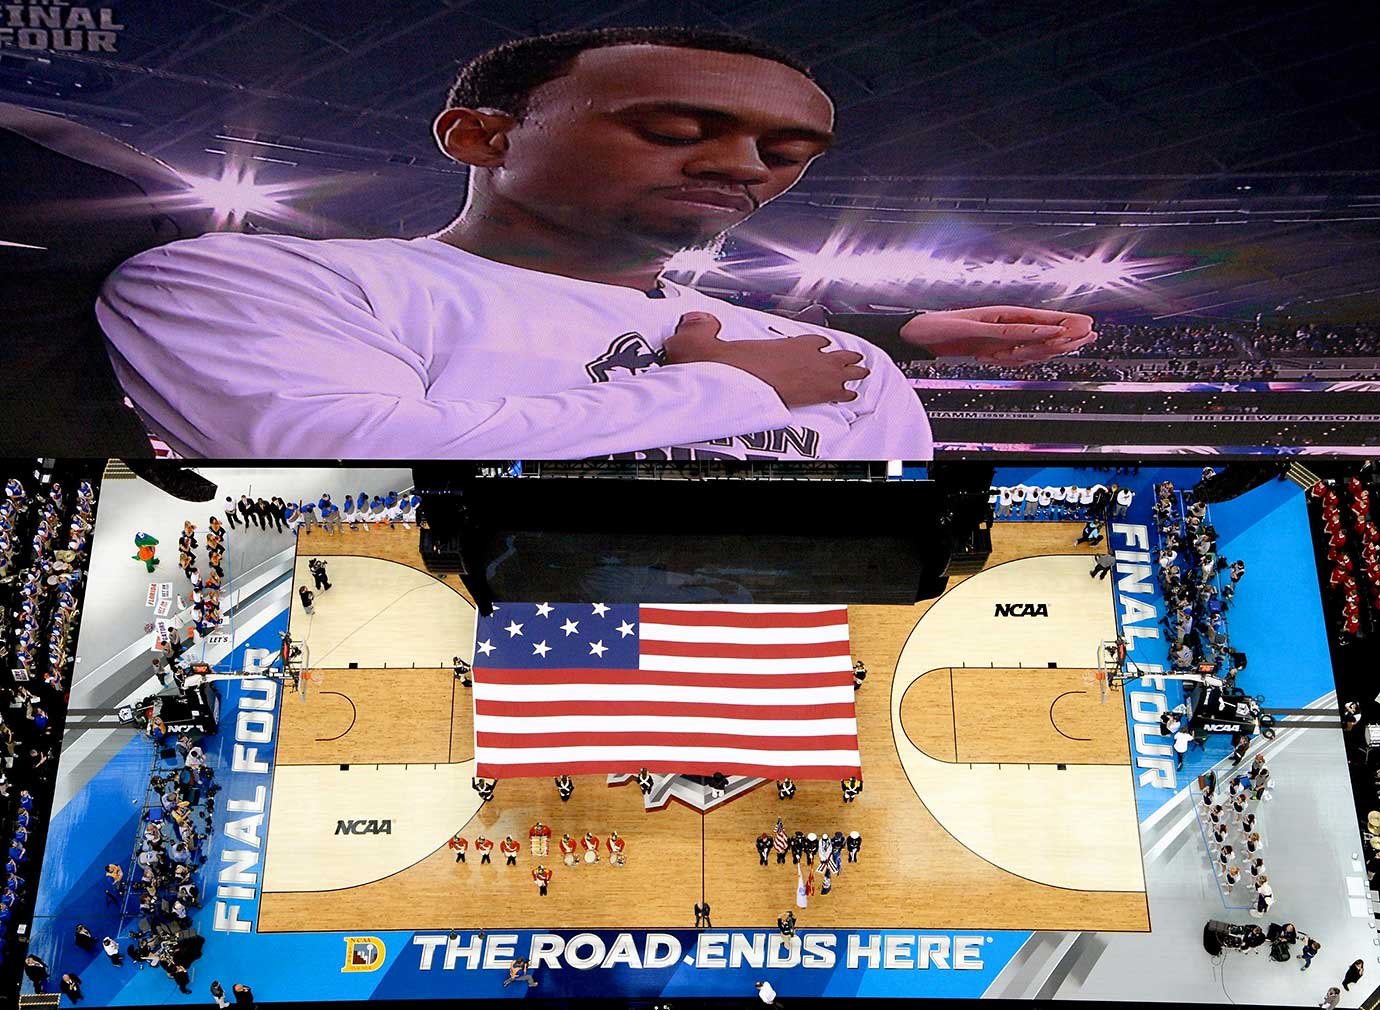 A UConn player on the screen at AT&T Stadium in Arlington with the USA flag unfurled below prior to a 2014 Final Four game between the Huskies and Florida.